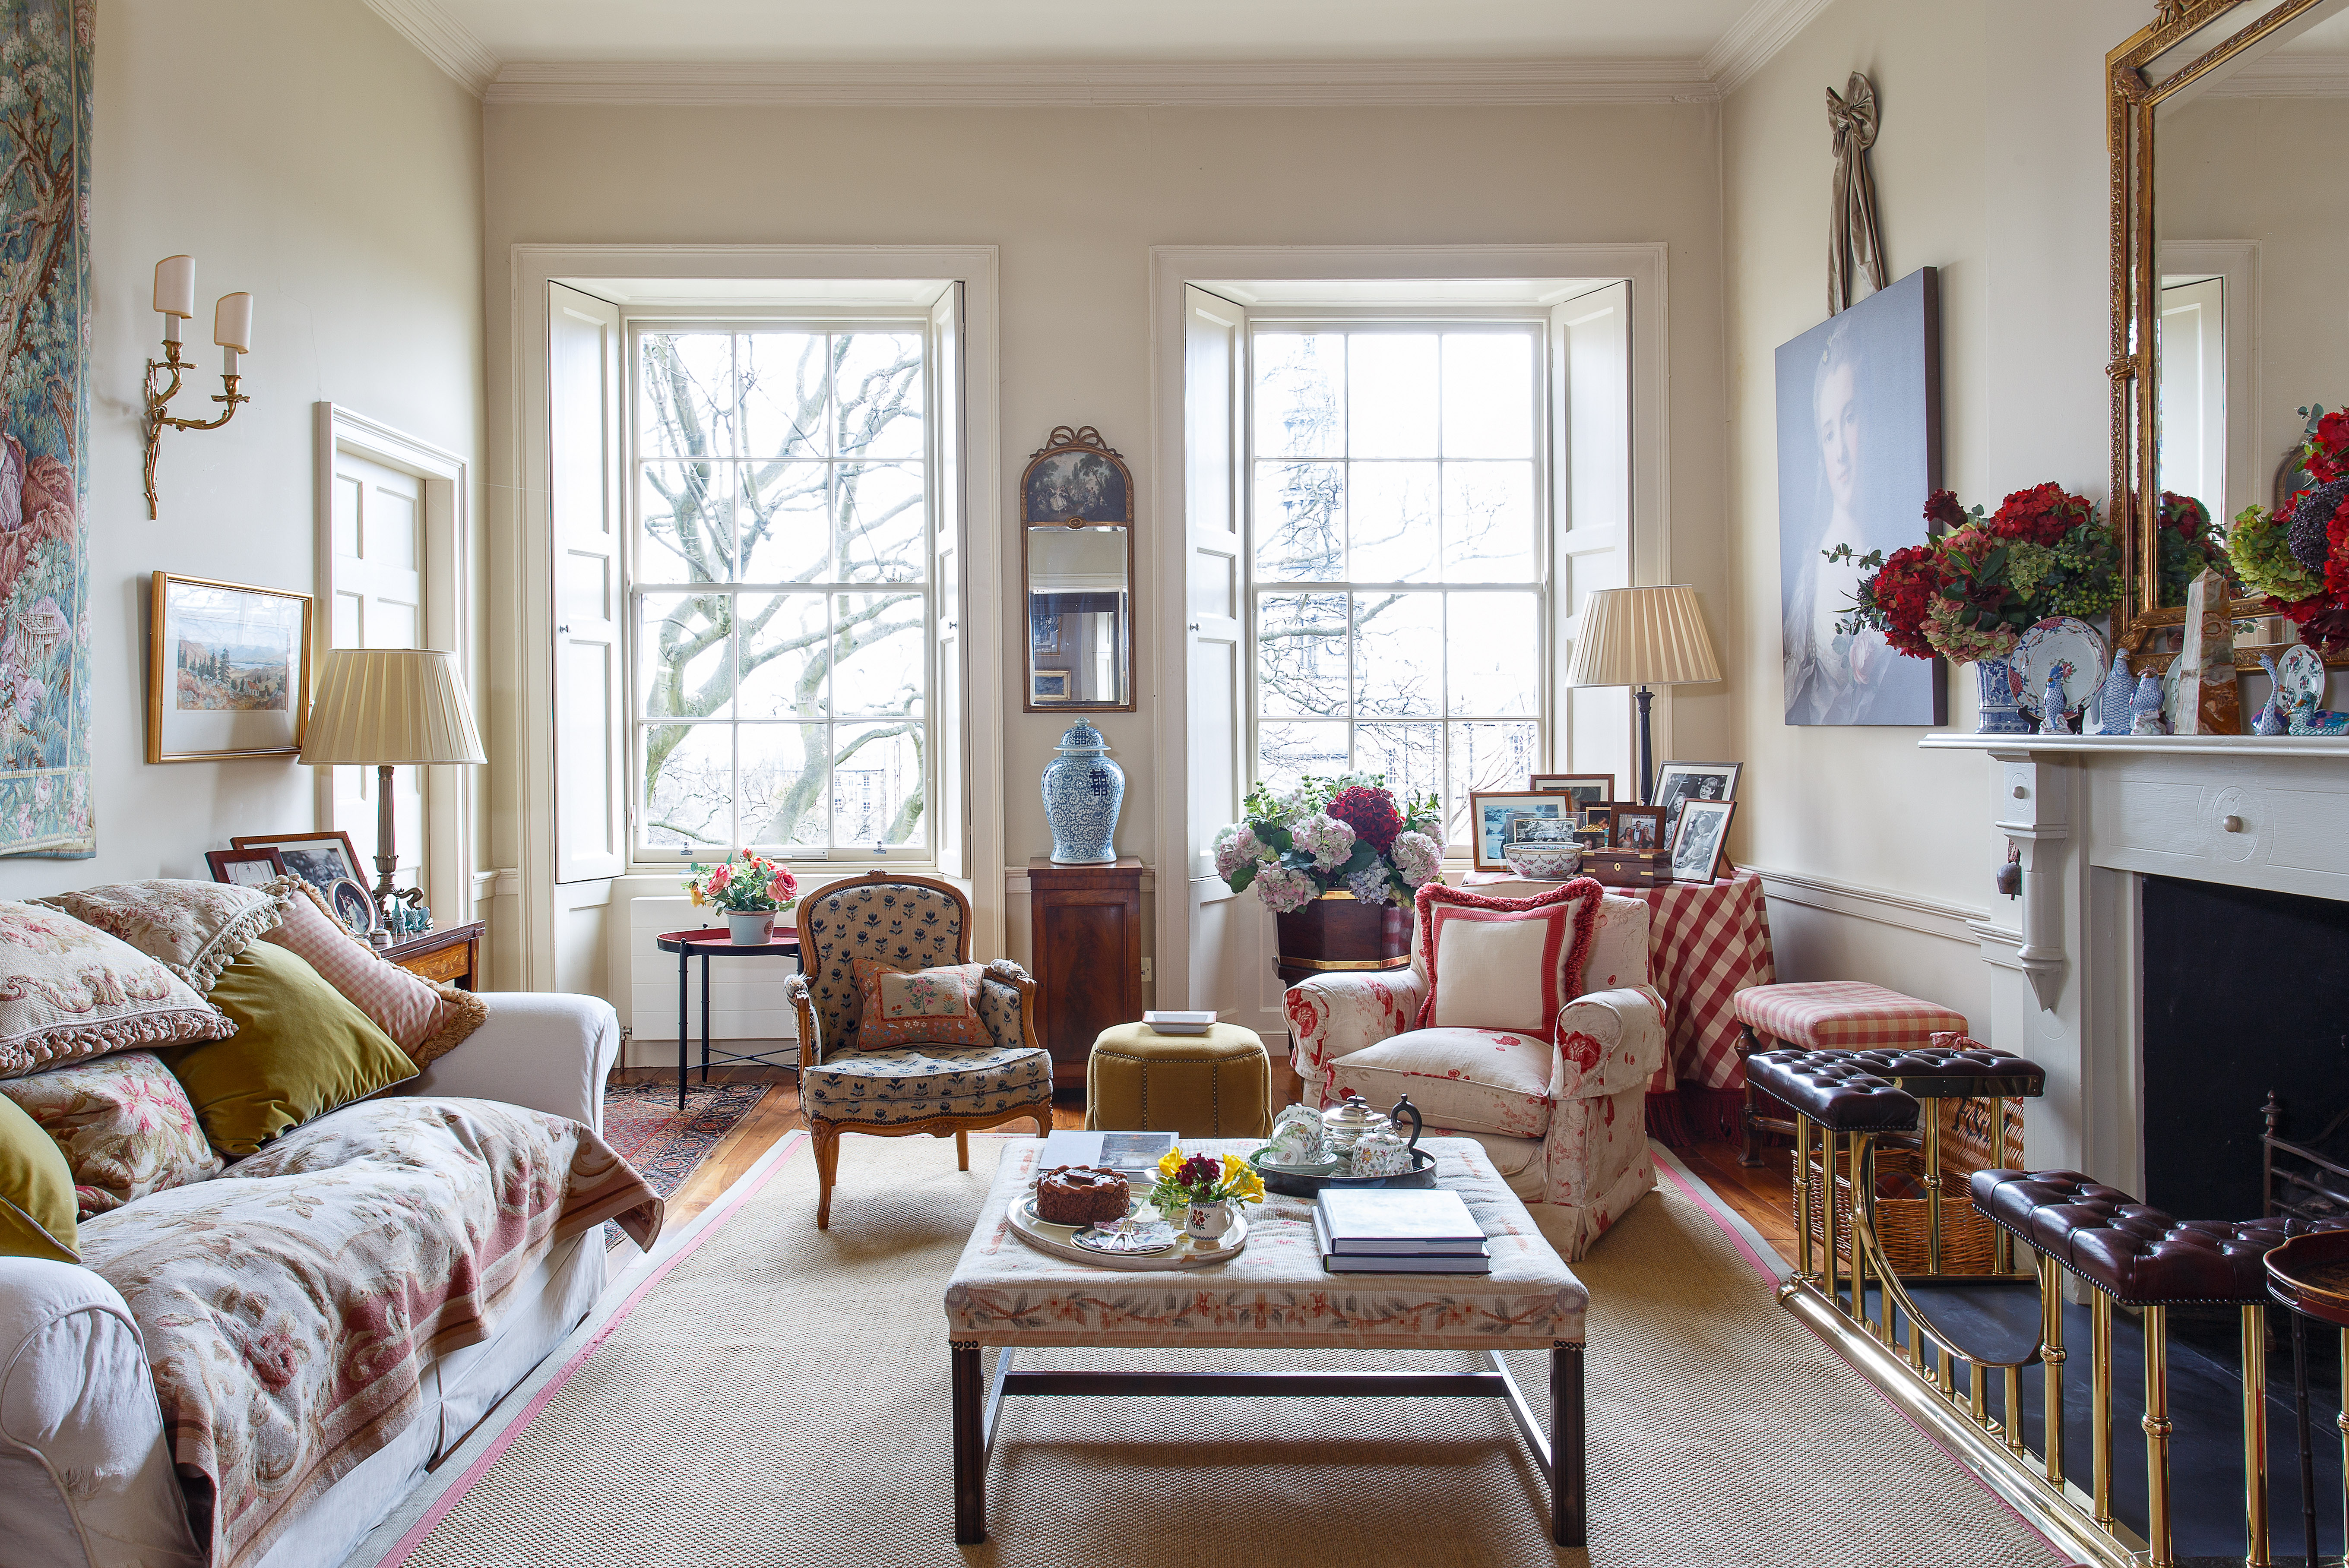 11 inspiring traditional living room ideas  Real Homes